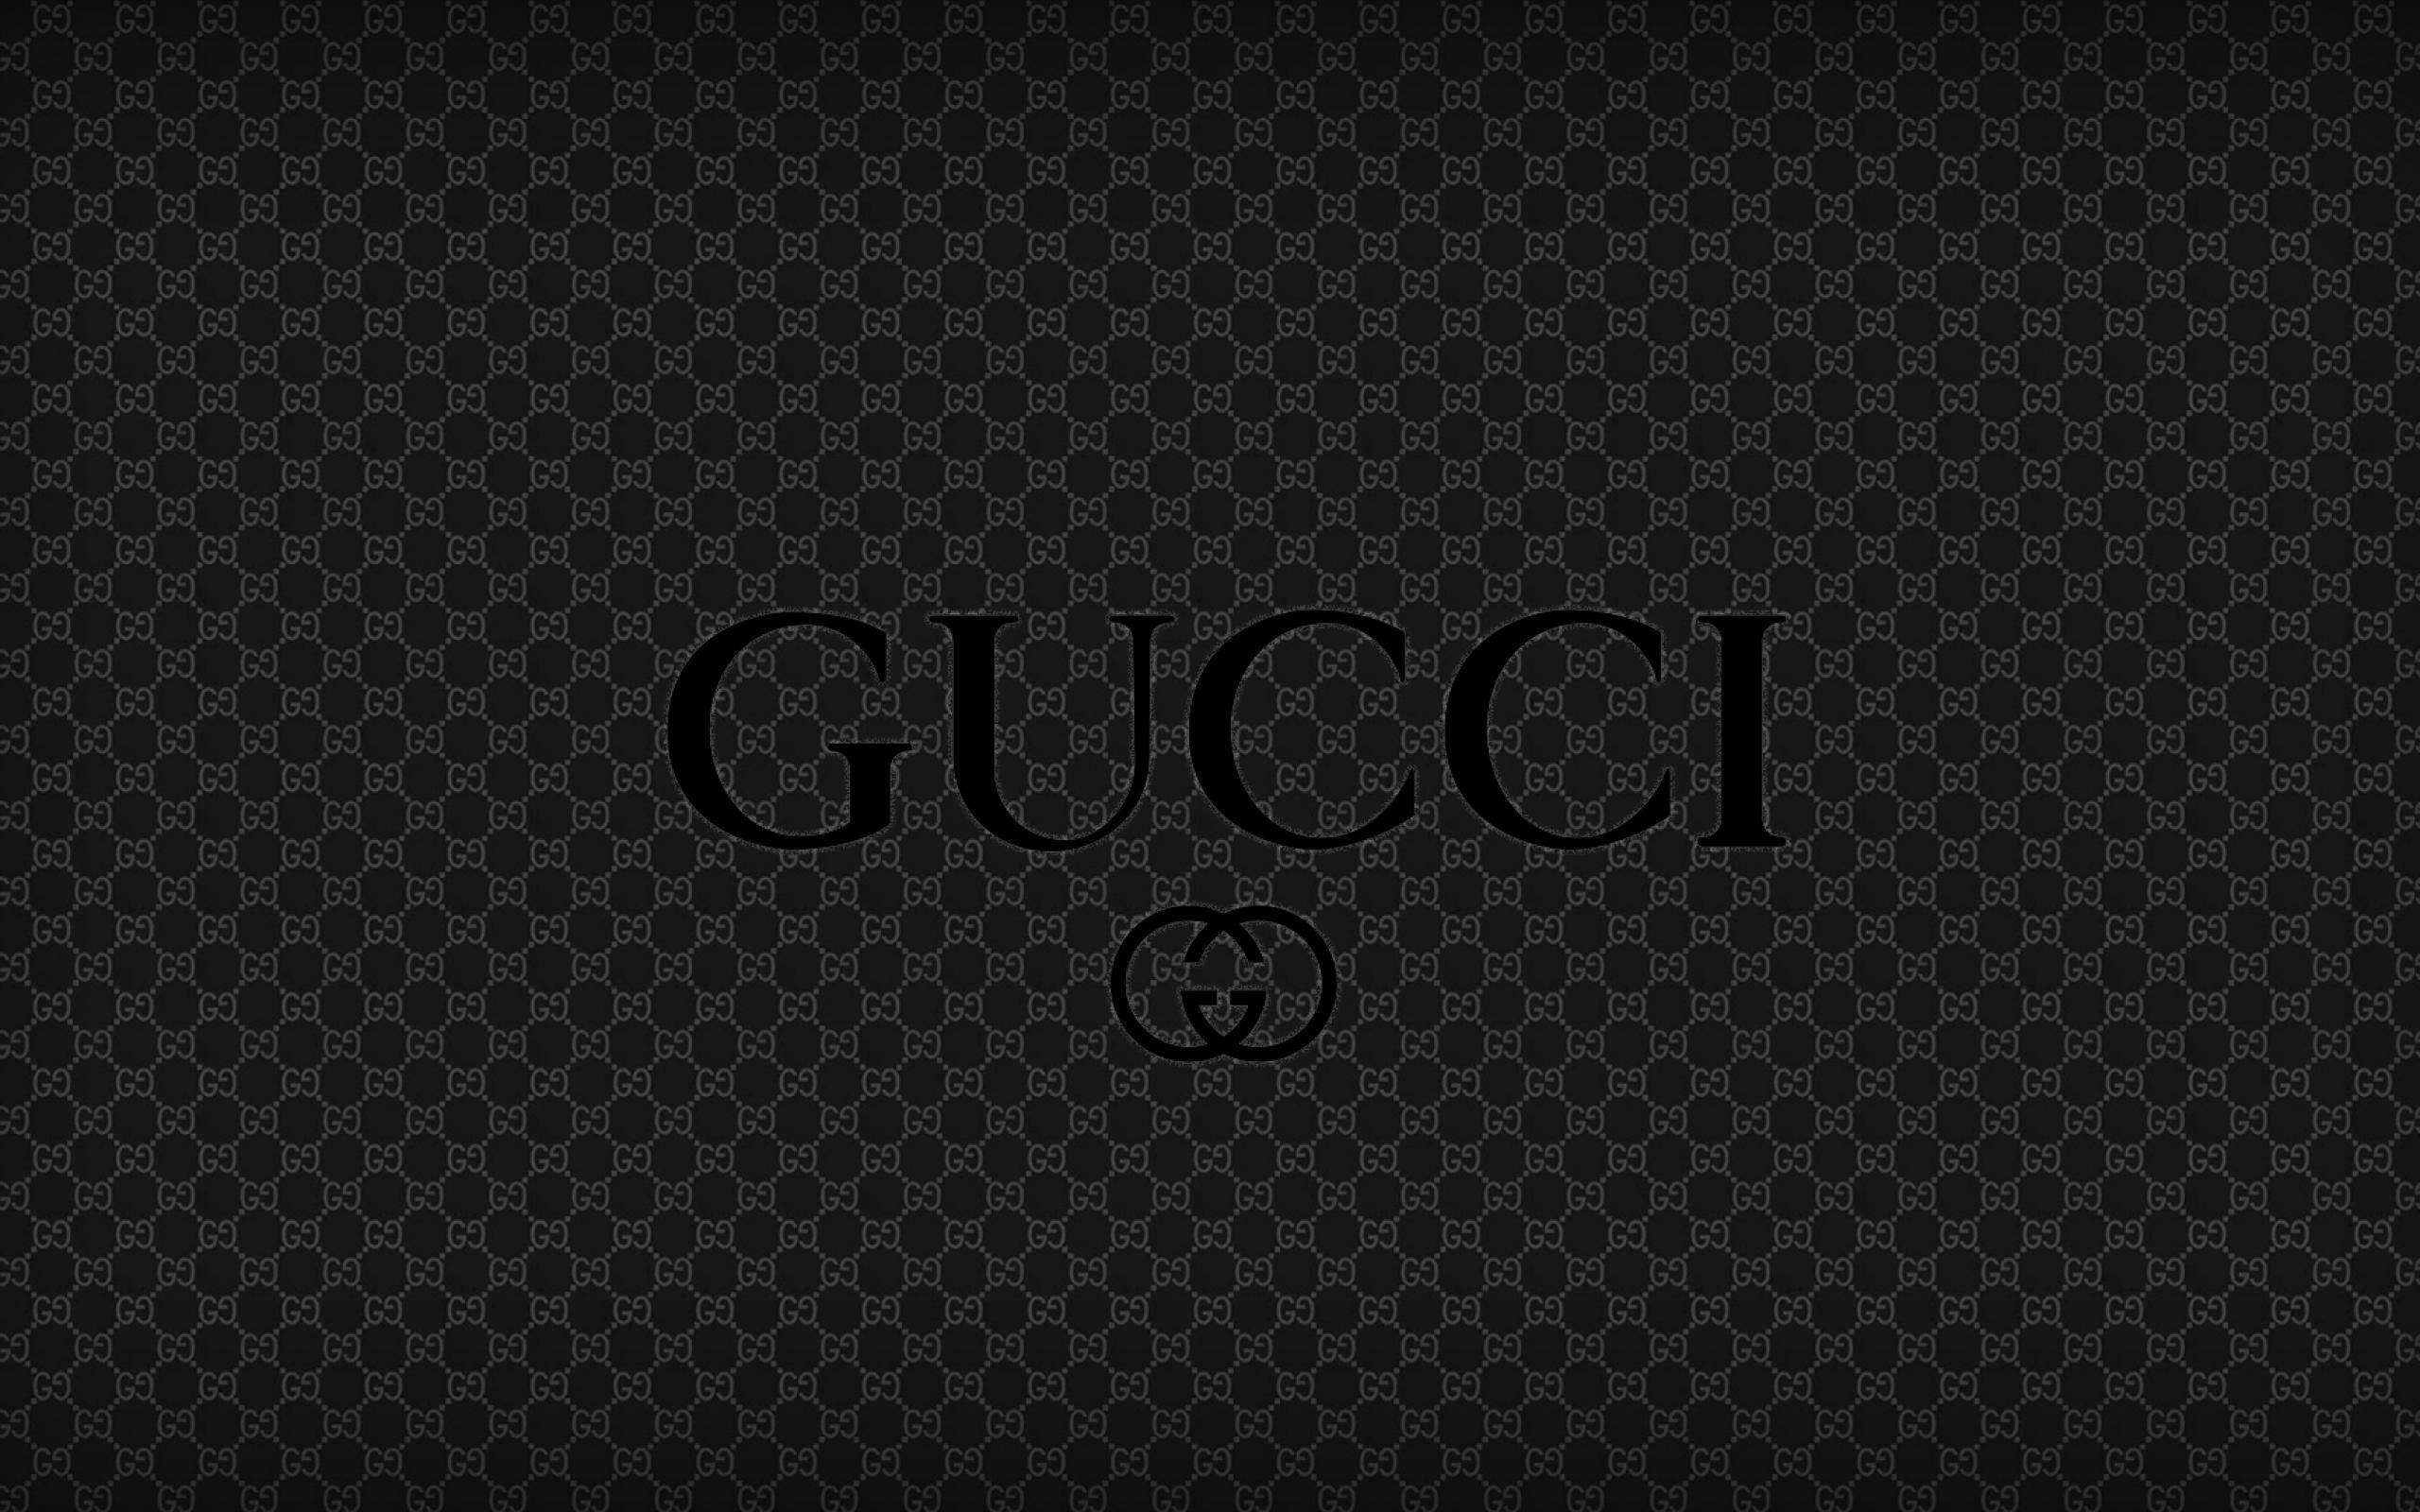 gucci logo wallpapers wallpaper cave